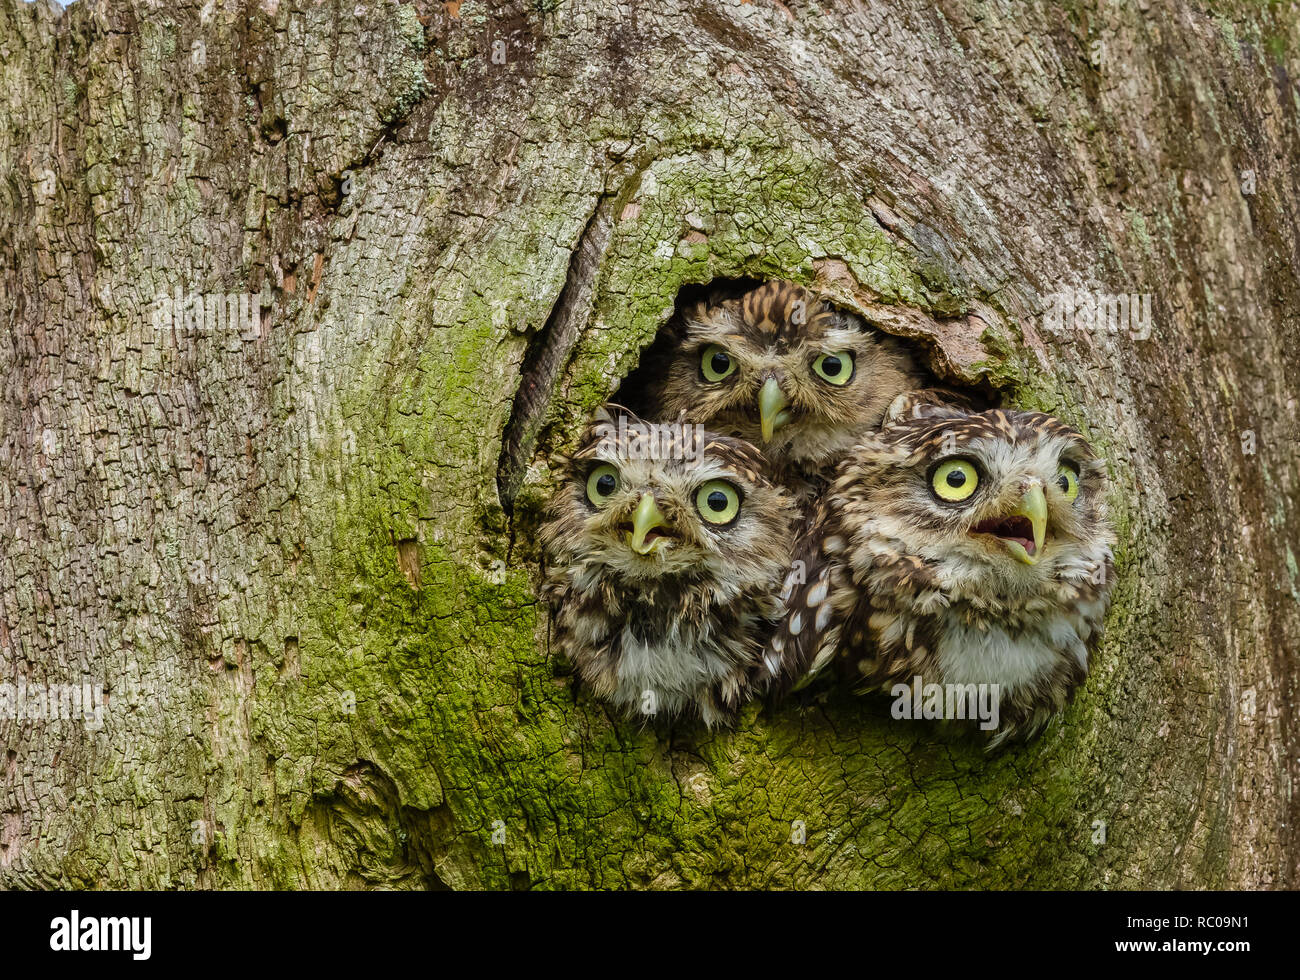 Little Owls in a tree trunk. Three Little Owls in the hollow of a tree.  Little Owl is the name of the species and not the size of the owl. - Stock Image